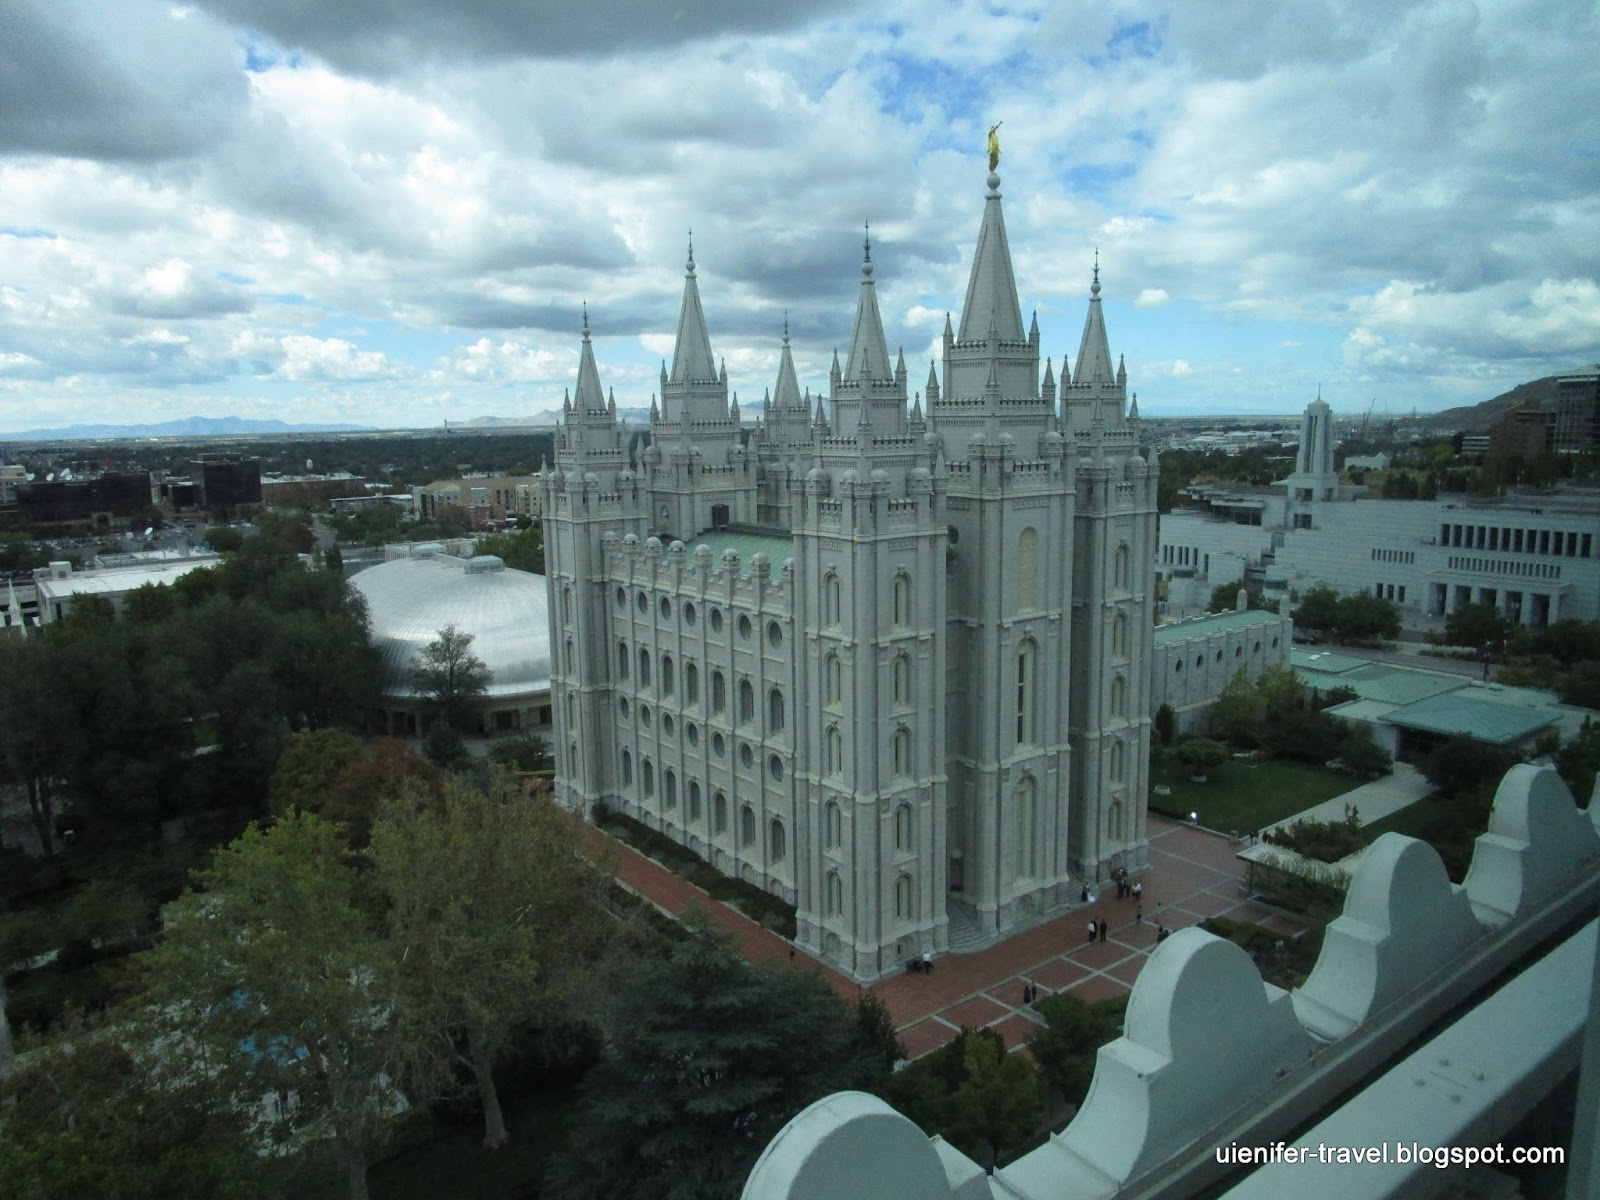 Храм мормонов Солт-Лейк. Солт-Лейк-Сити. Юта (Salt Lake Temple. Salt Lake City, Temple Square)